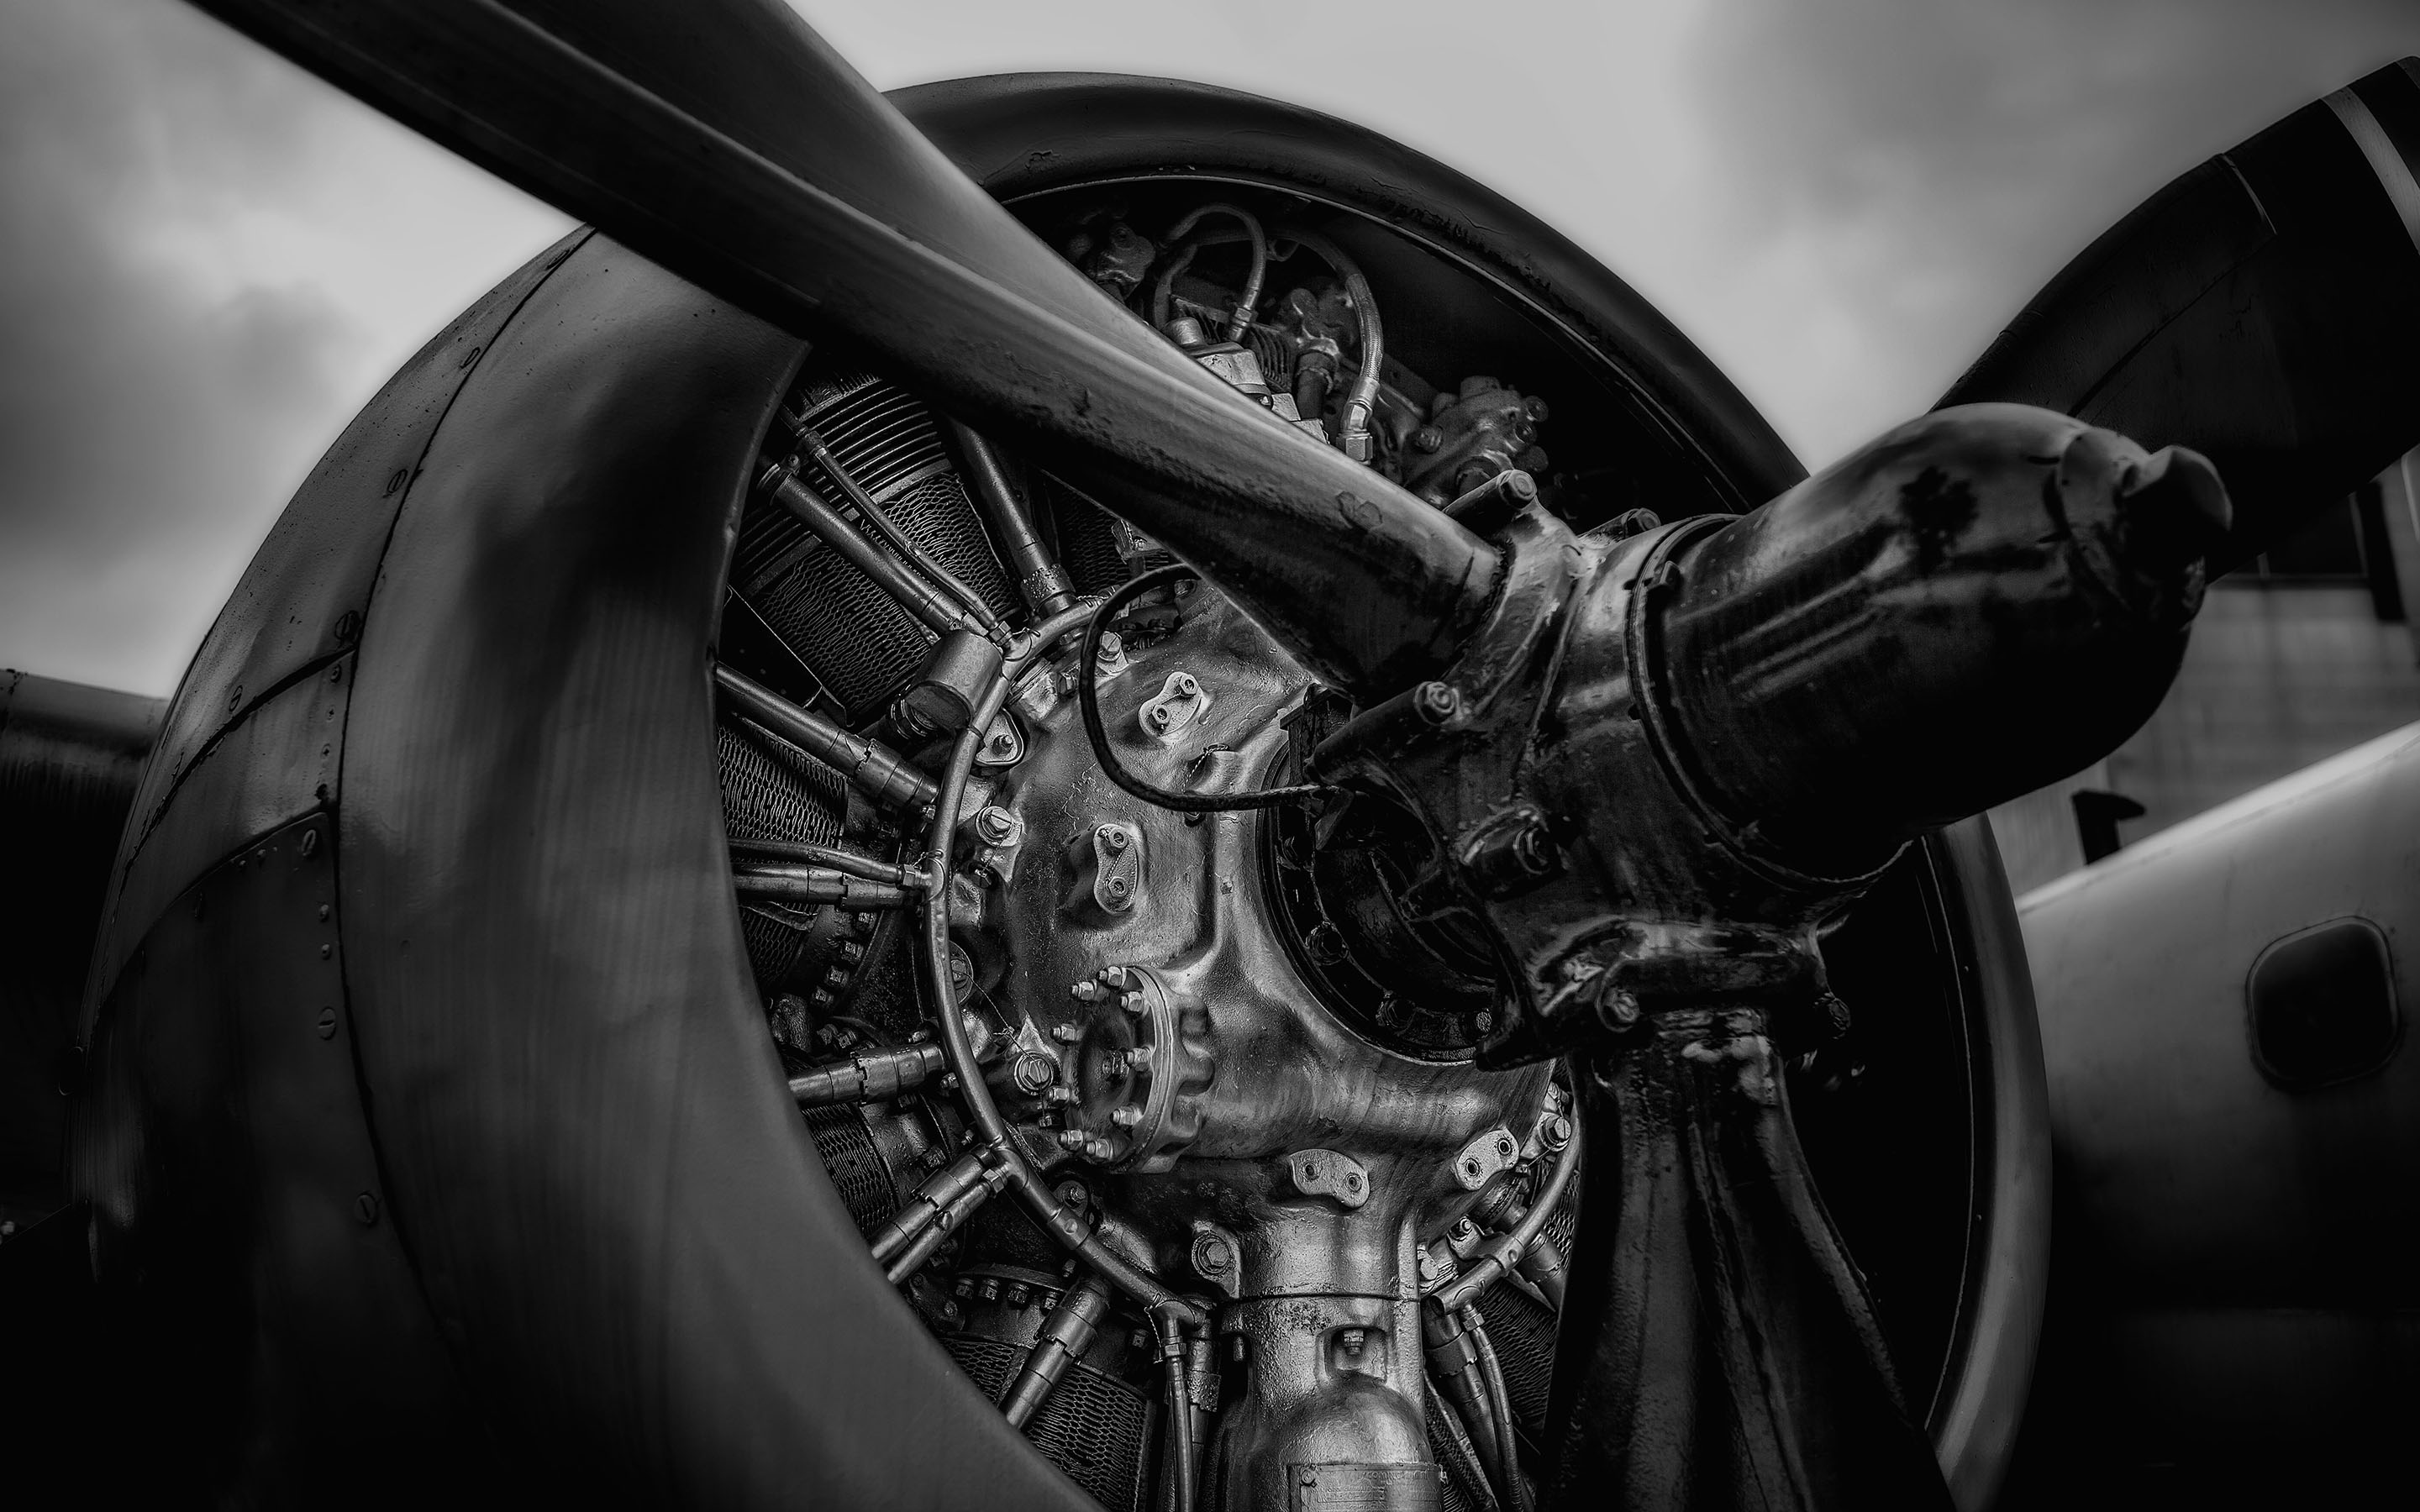 monochrome plane propeller widescreen wallpaper 51466